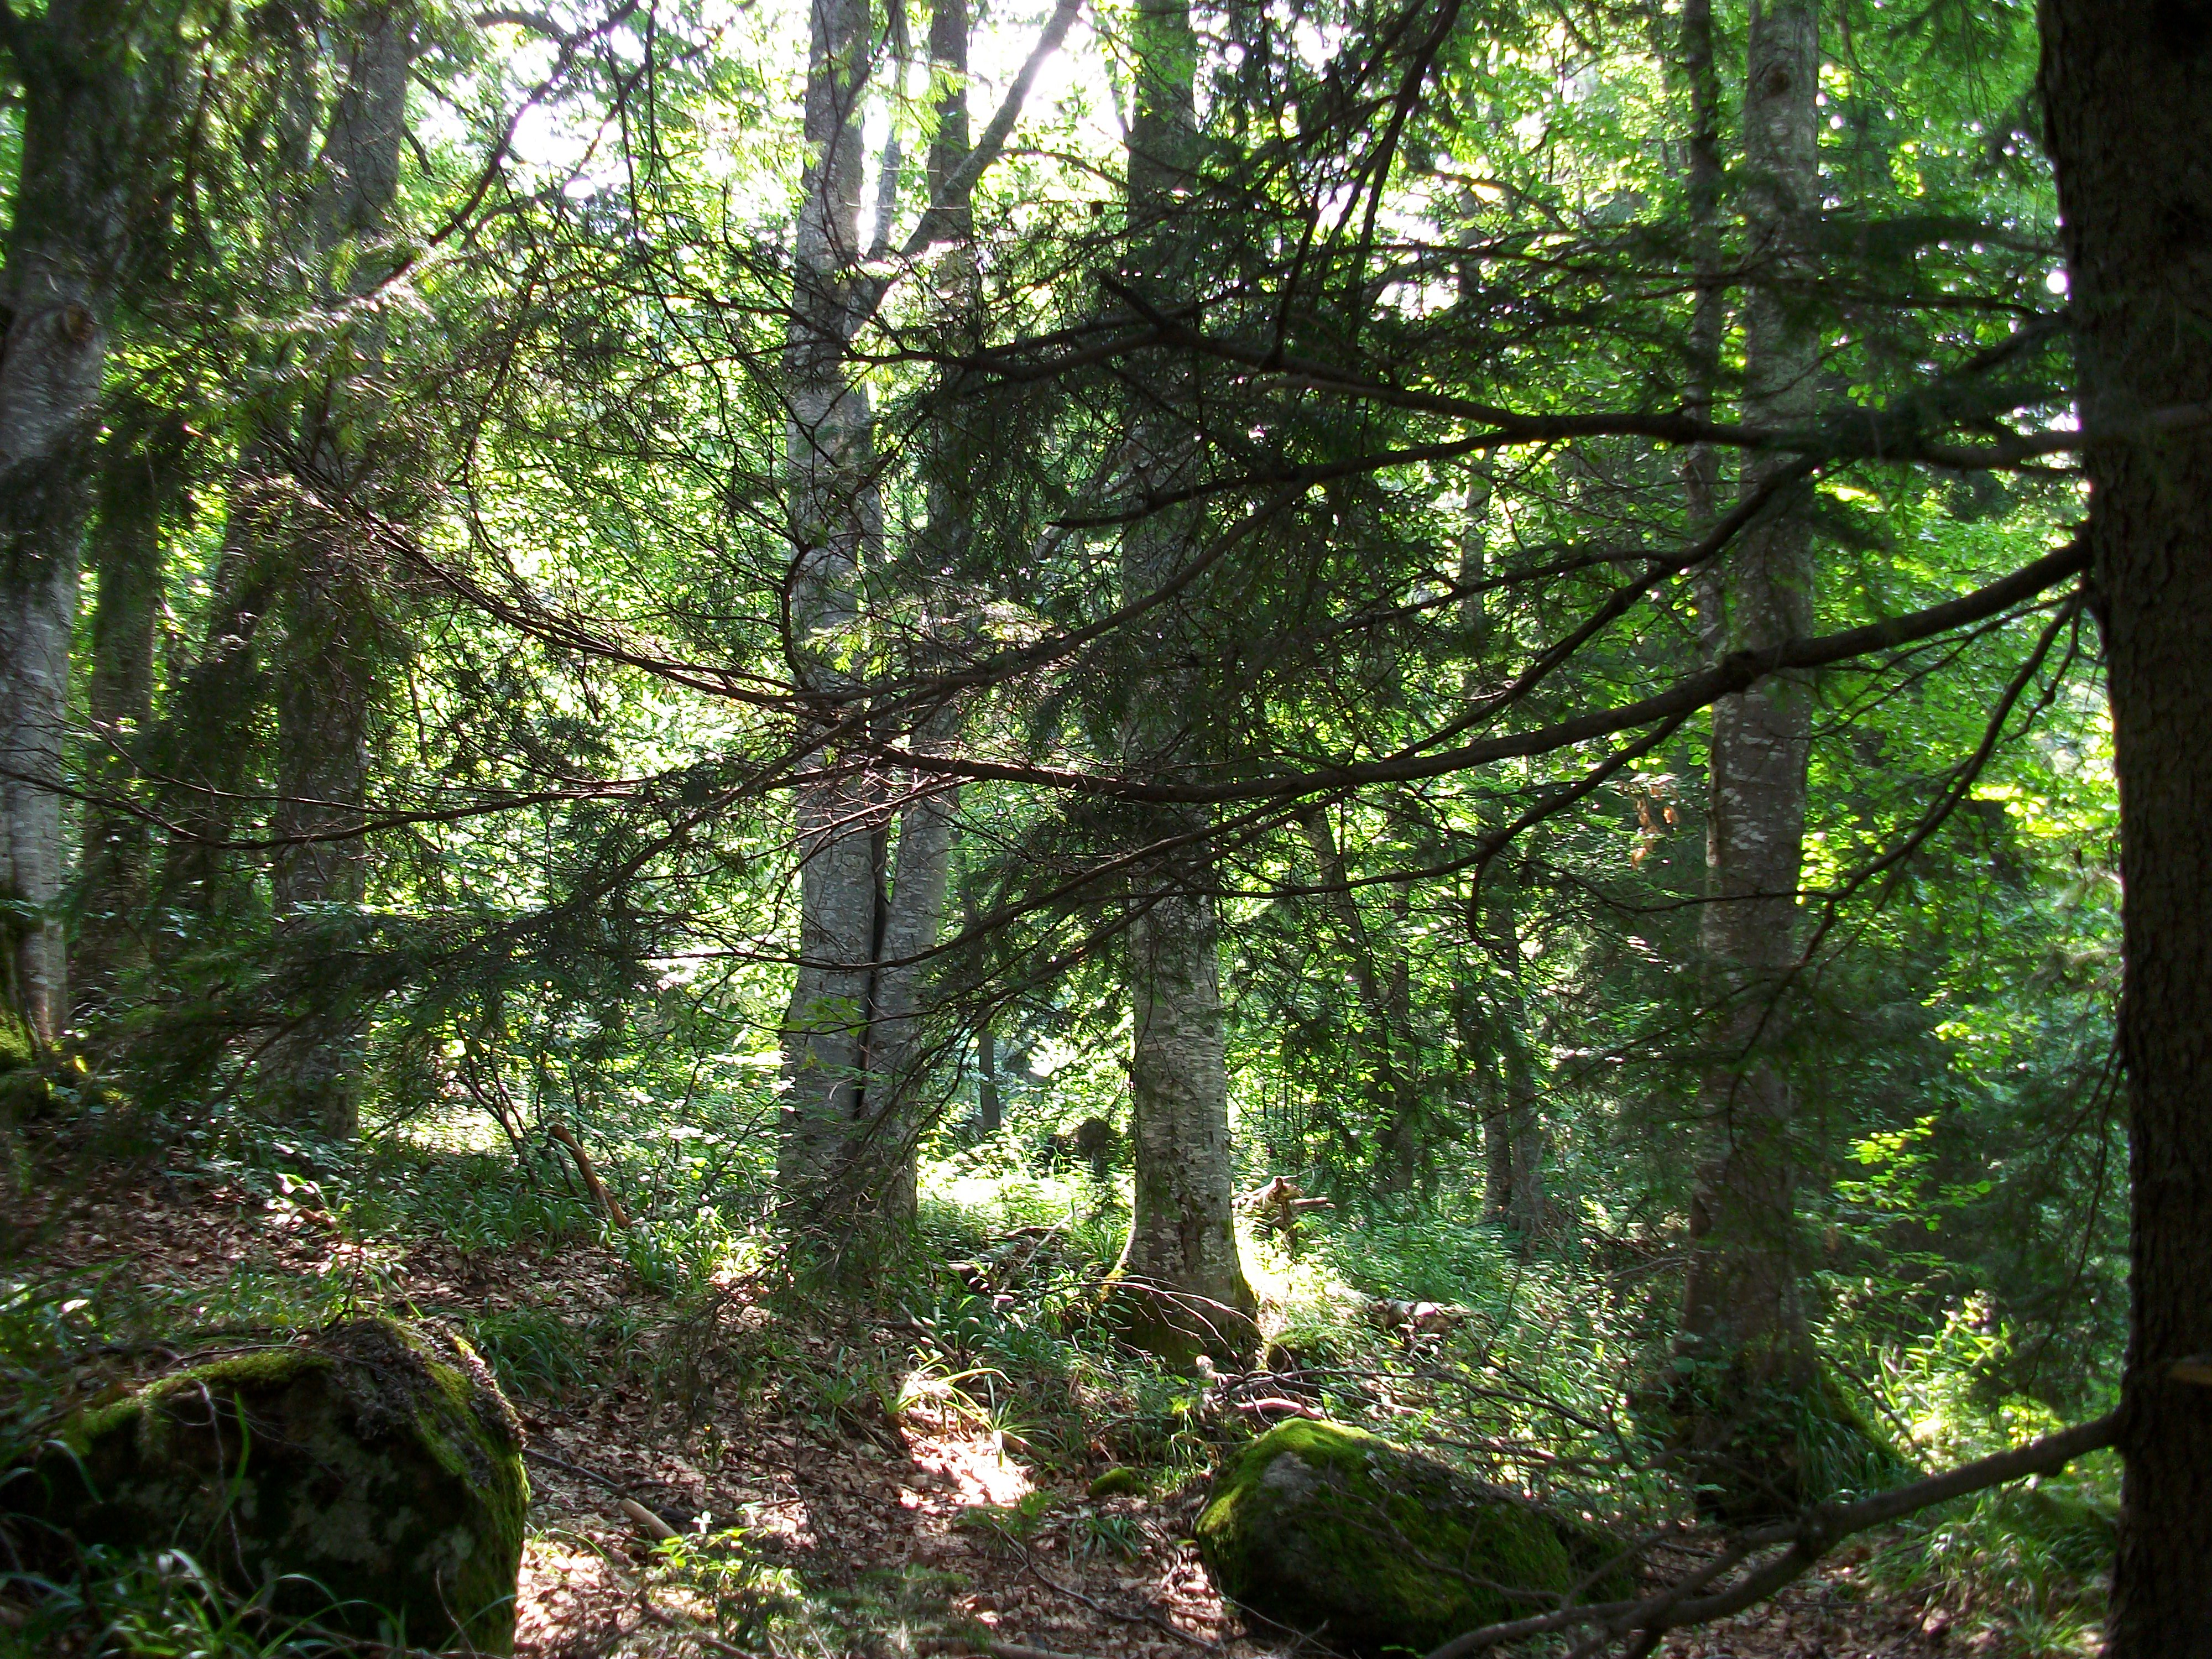 Sunlight Forest, Vitosha, Woods, Trees, Park, HQ Photo